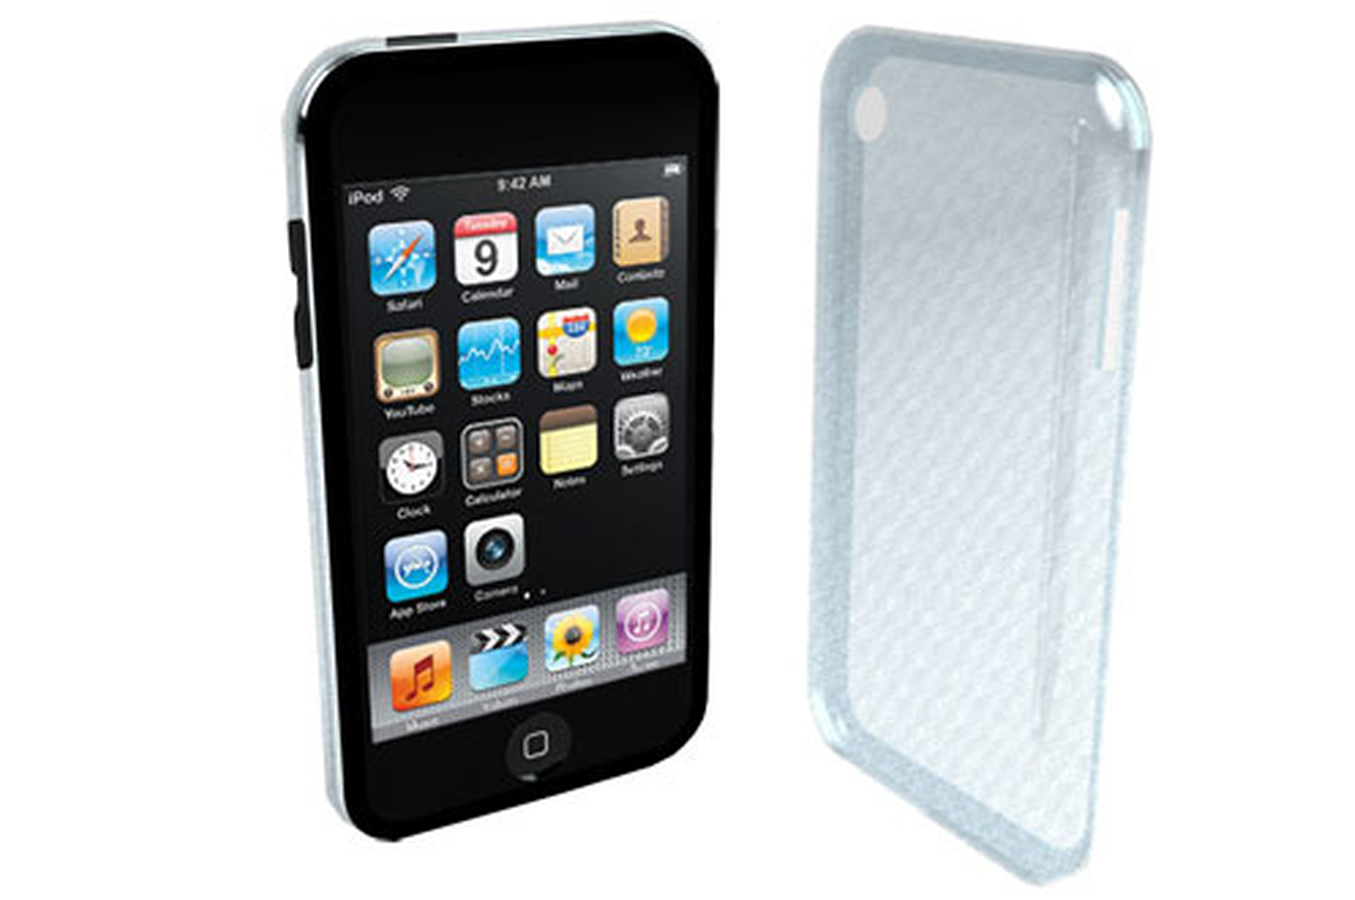 housse protection pour ipod muvit coque ipod touch 4g mucmpbkt4g002 1266861 darty